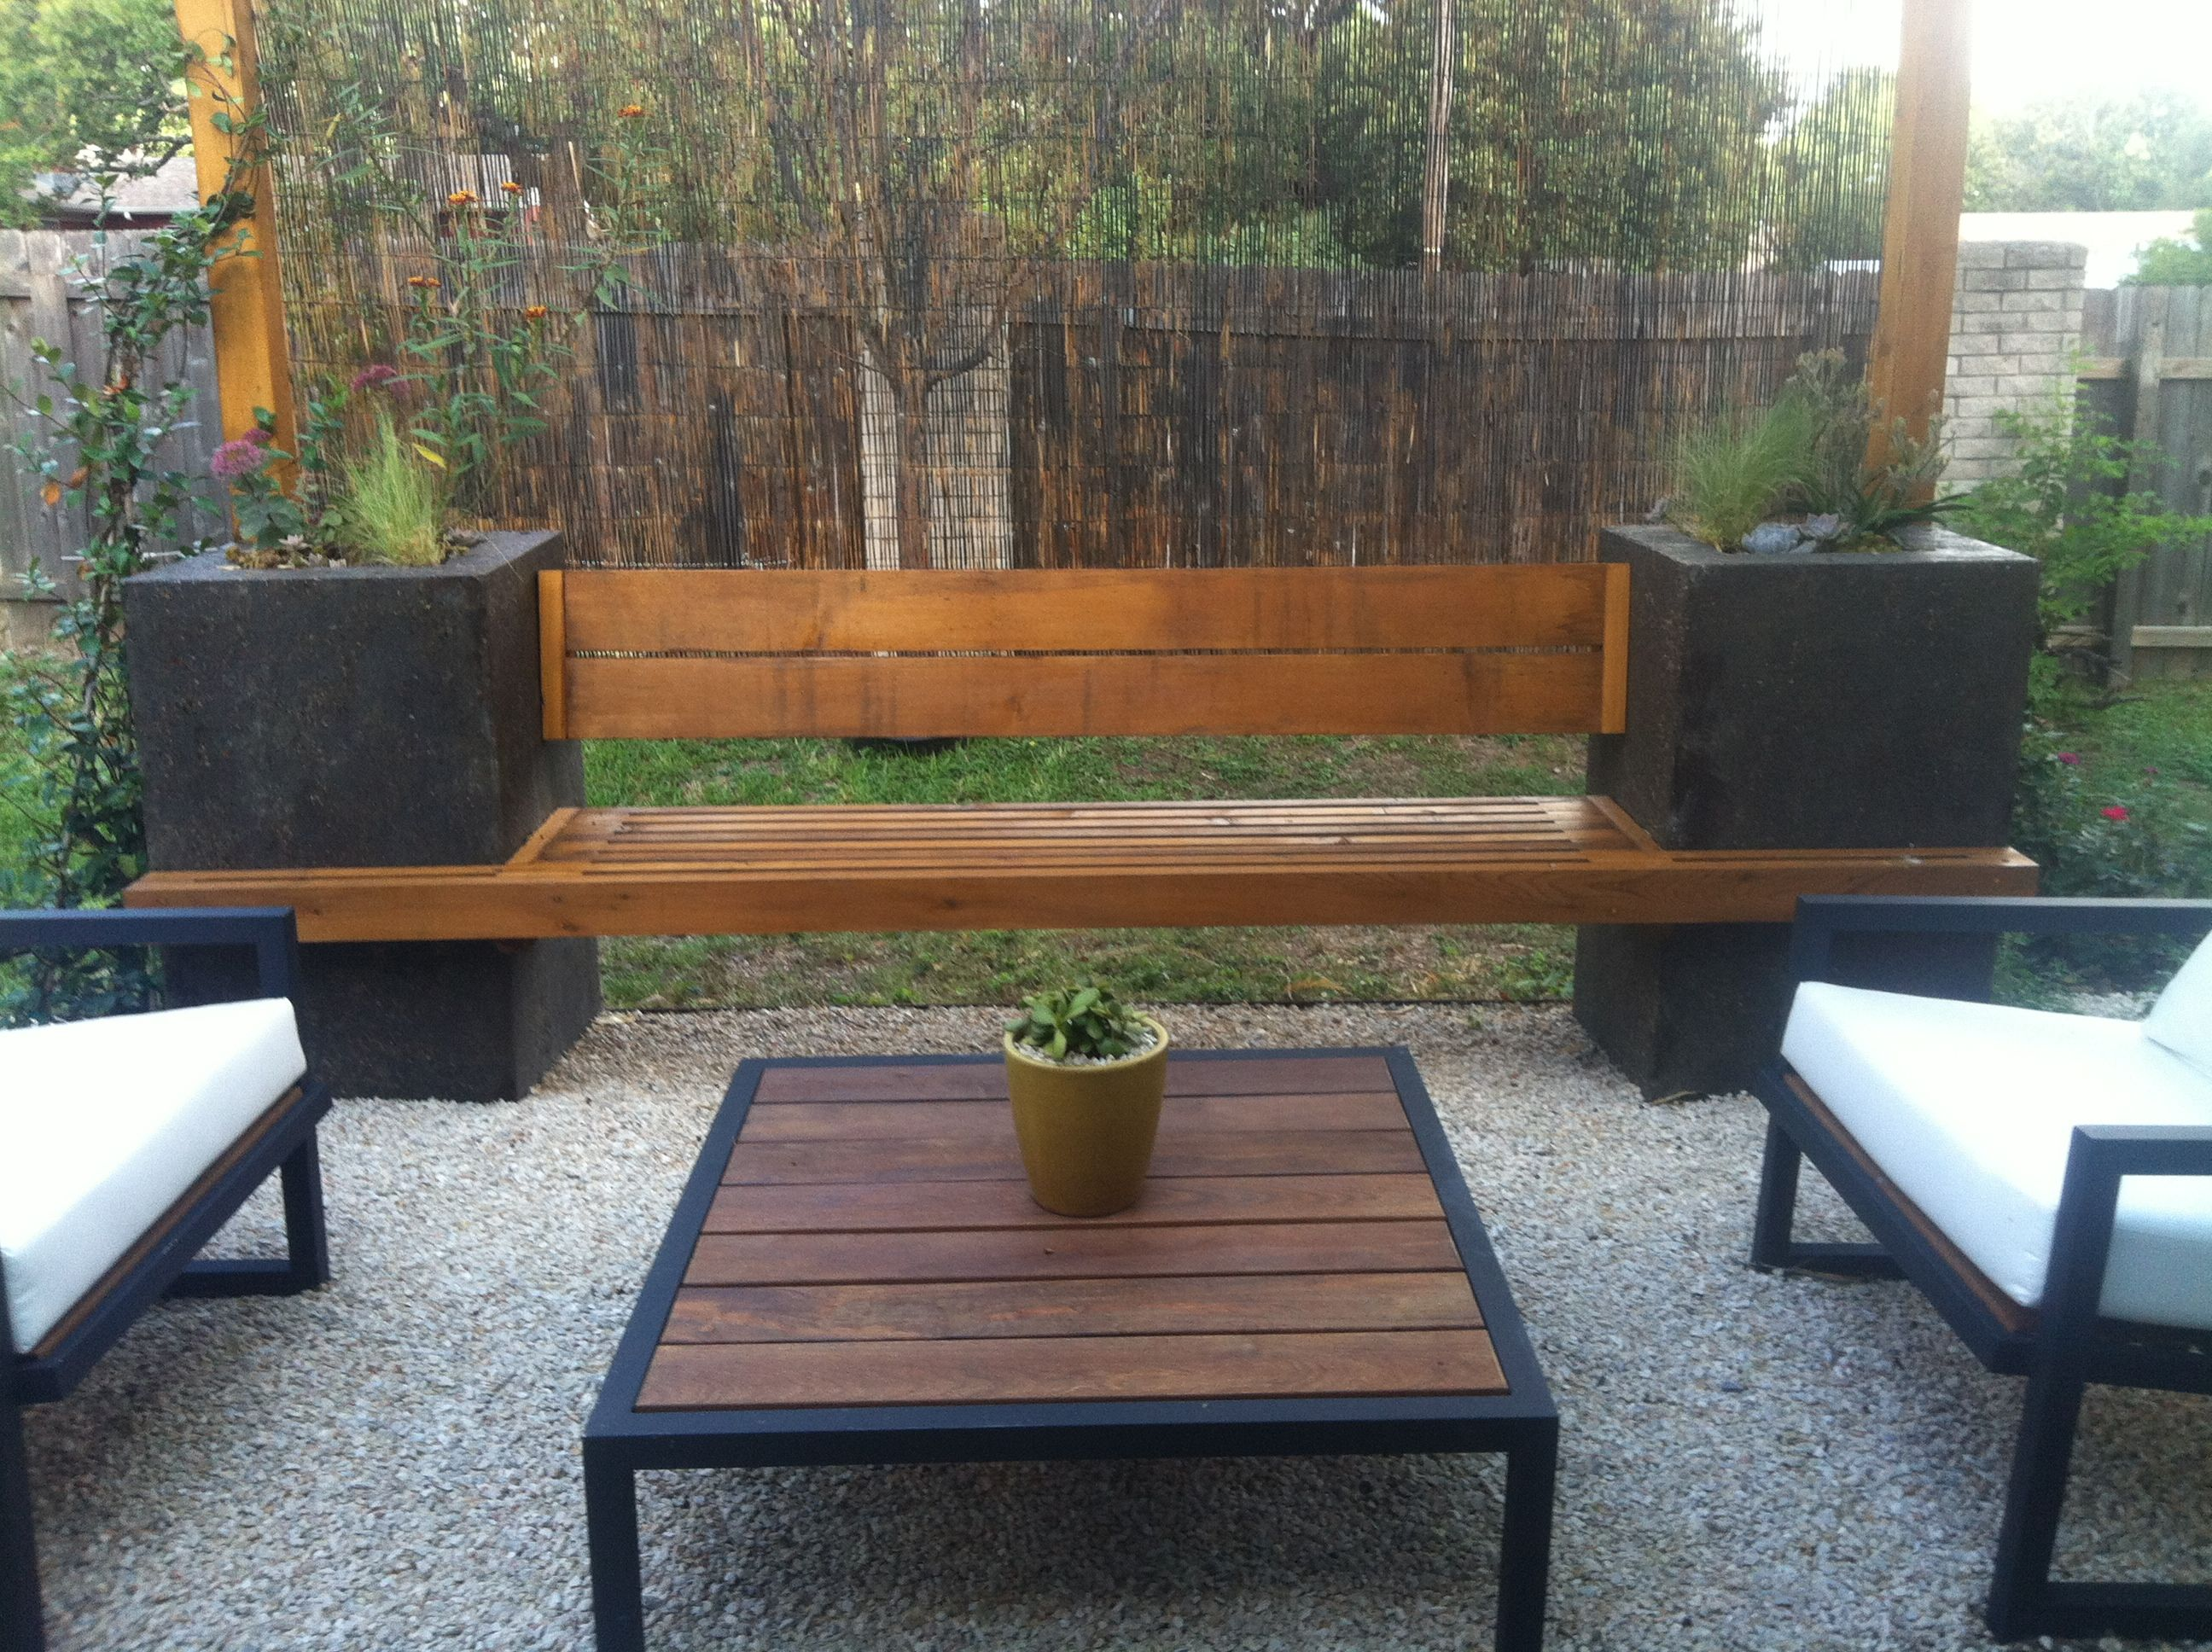 Concrete Bench Ideas Part - 27: Small, Crushed Limestone Patio Area With Stained Concrete Bench With Built  In Planters